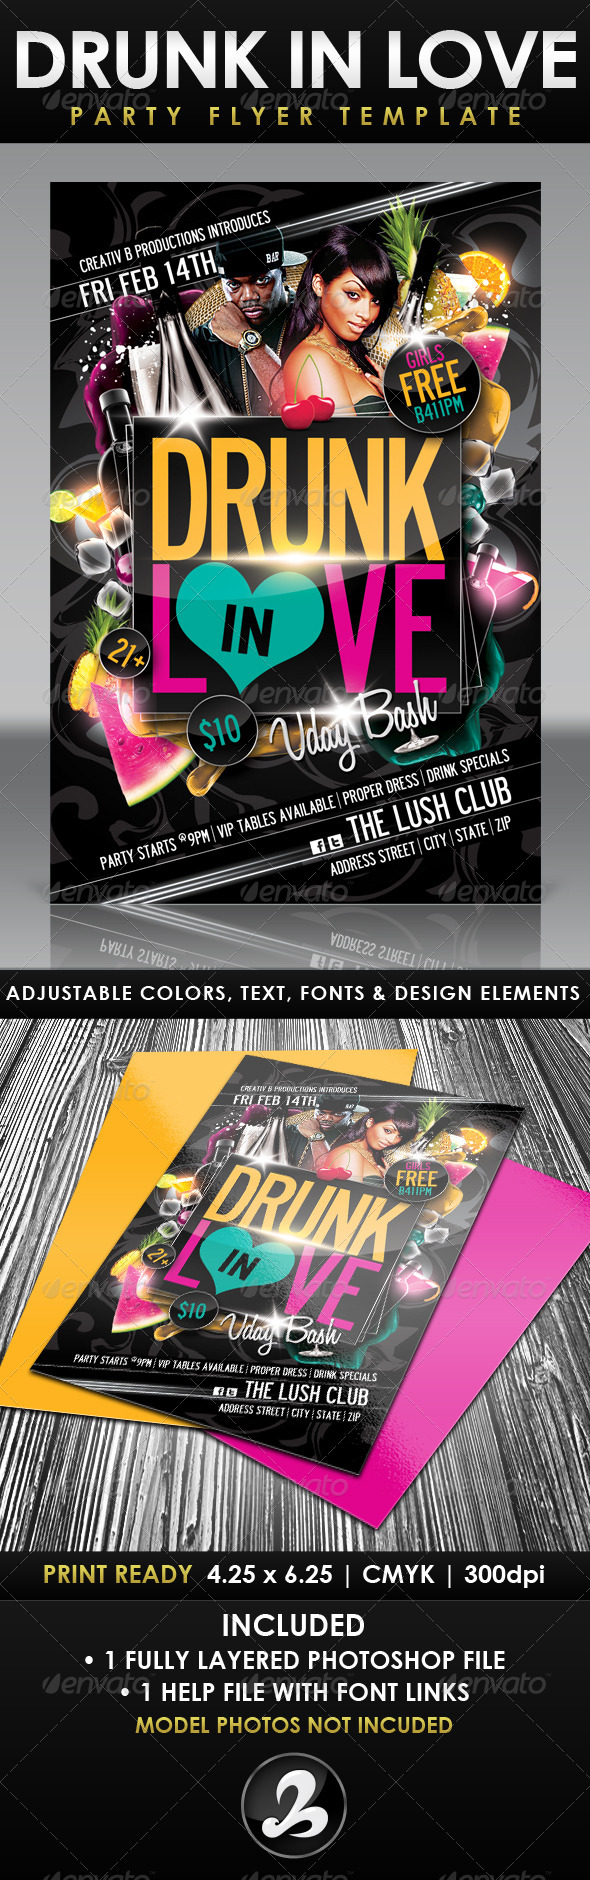 Drunk In Love Party Flyer Template - Clubs & Parties Events